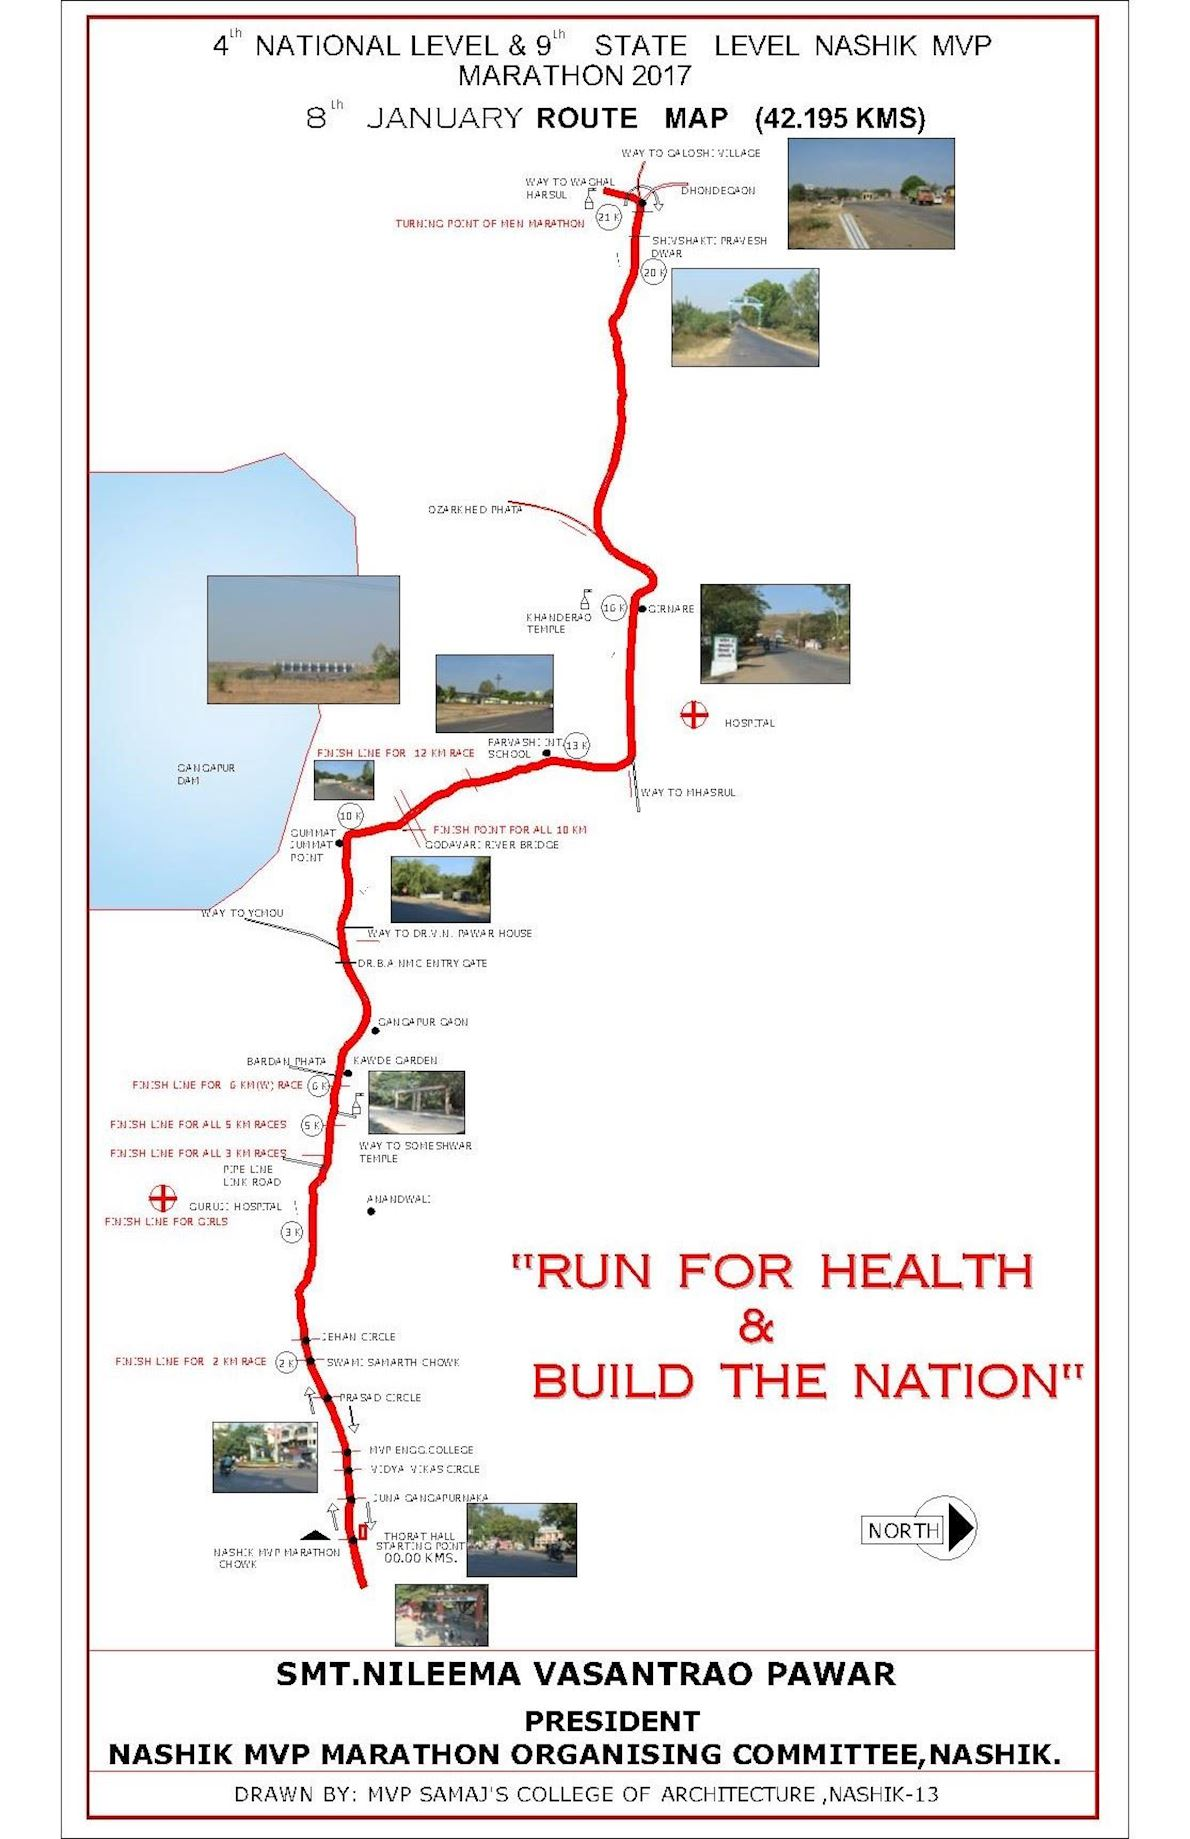 Nashik MVP Run Route Map